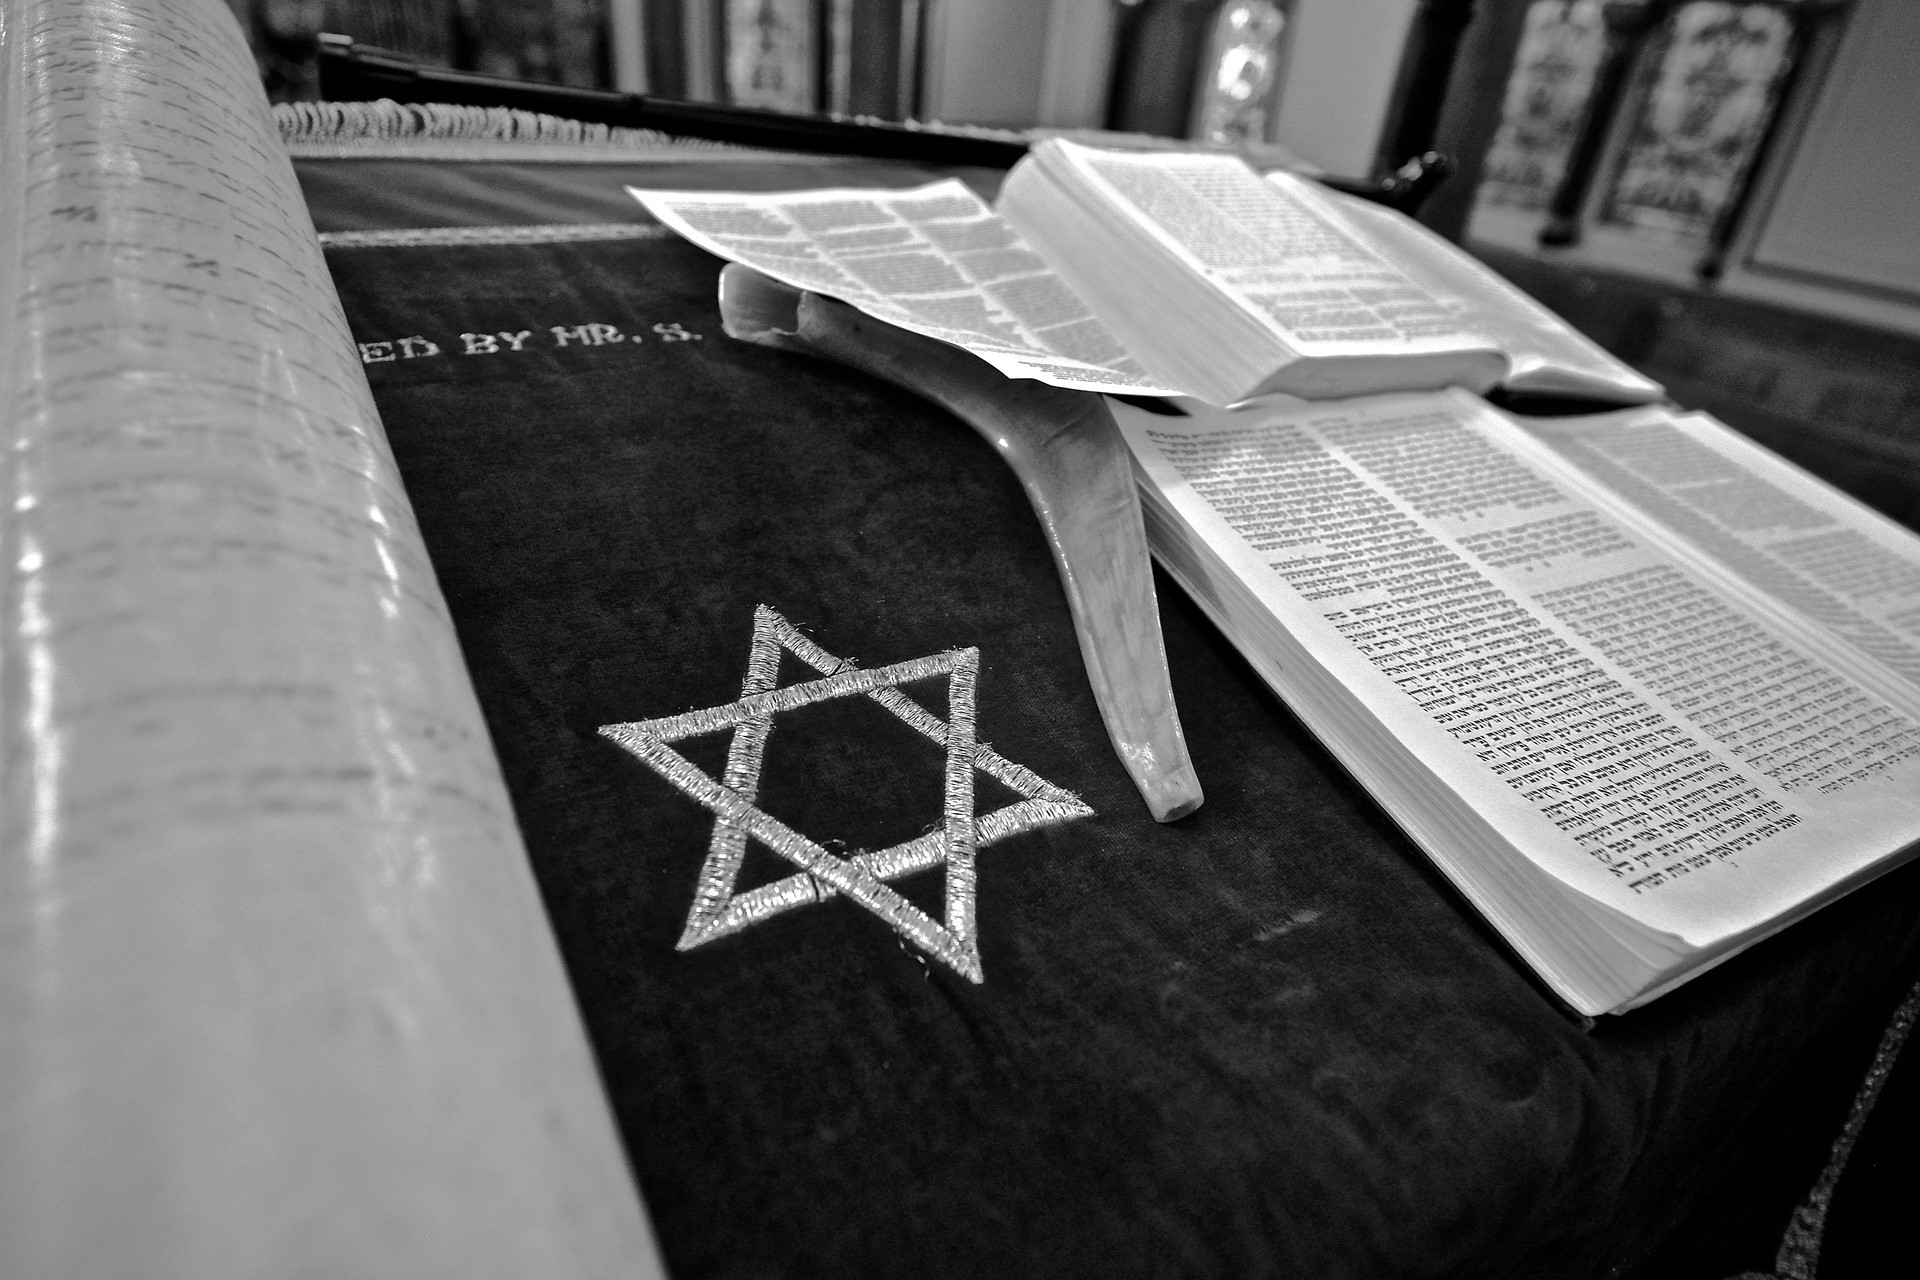 Accommodating religion in the workplace